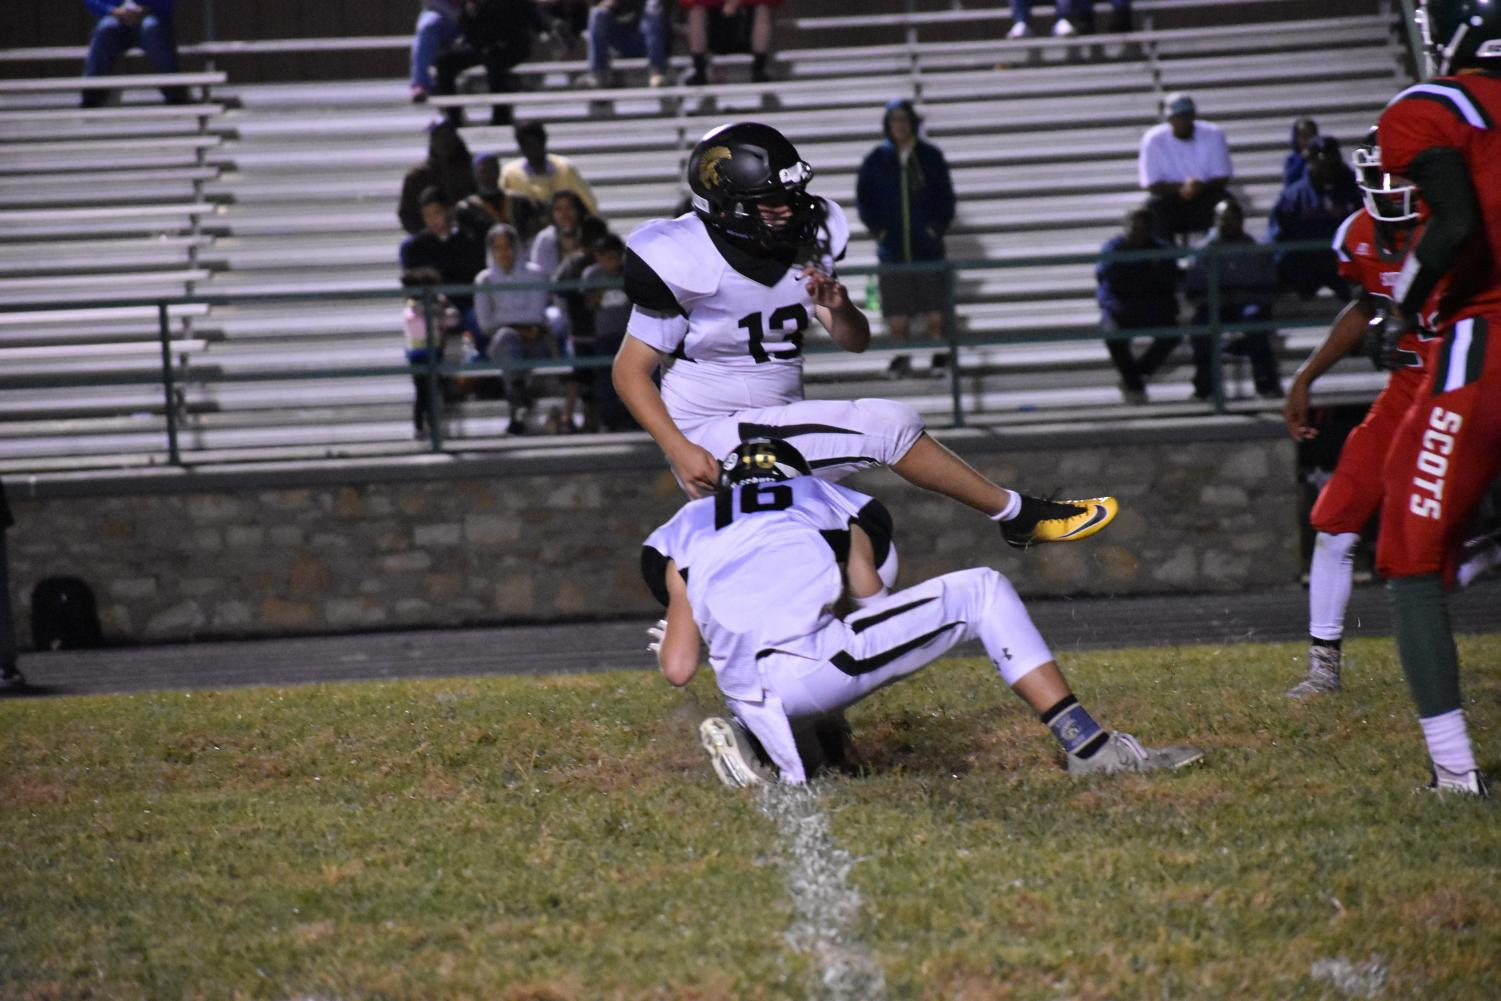 Tanner+Scritchfield%2C+junior%2C+kicks+his+50th+field+goal+during+the+game+against+Highland+Park+High+School.+